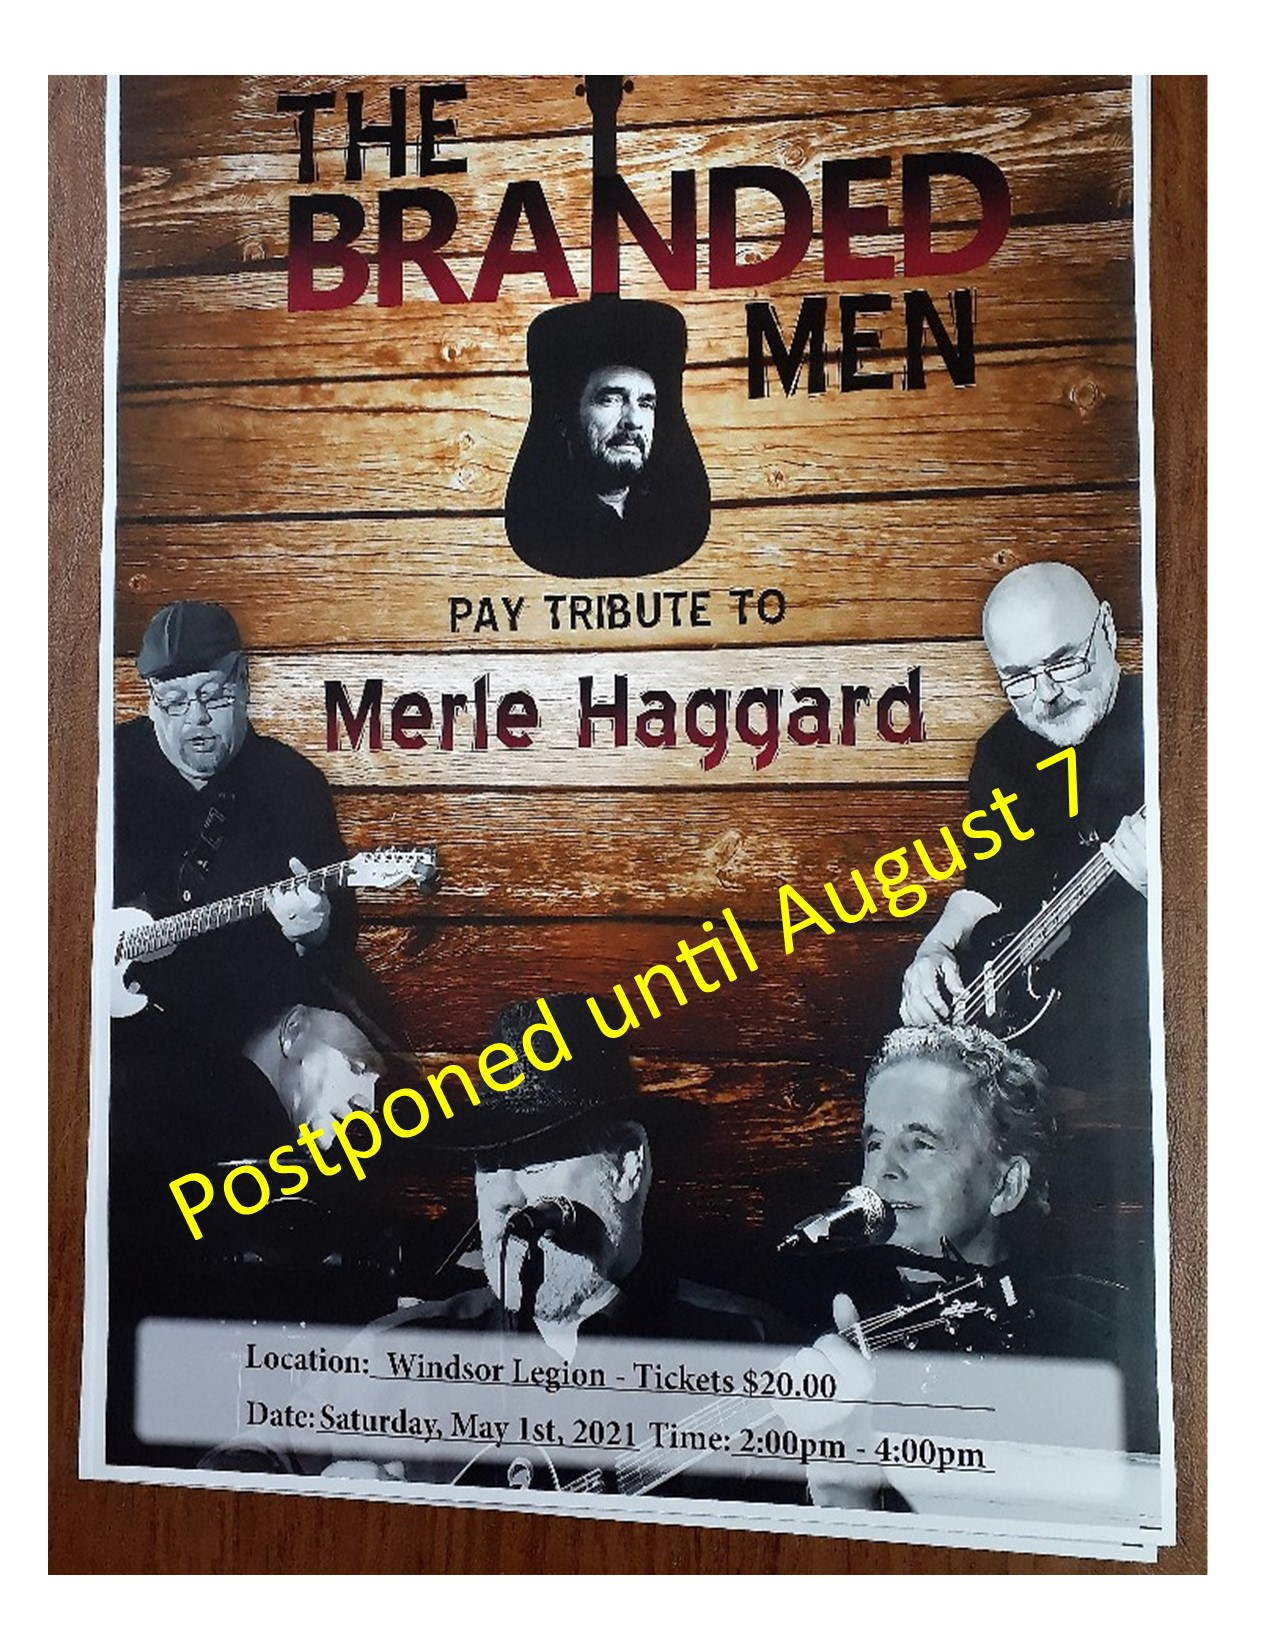 Merle Haggard Tribute postponed